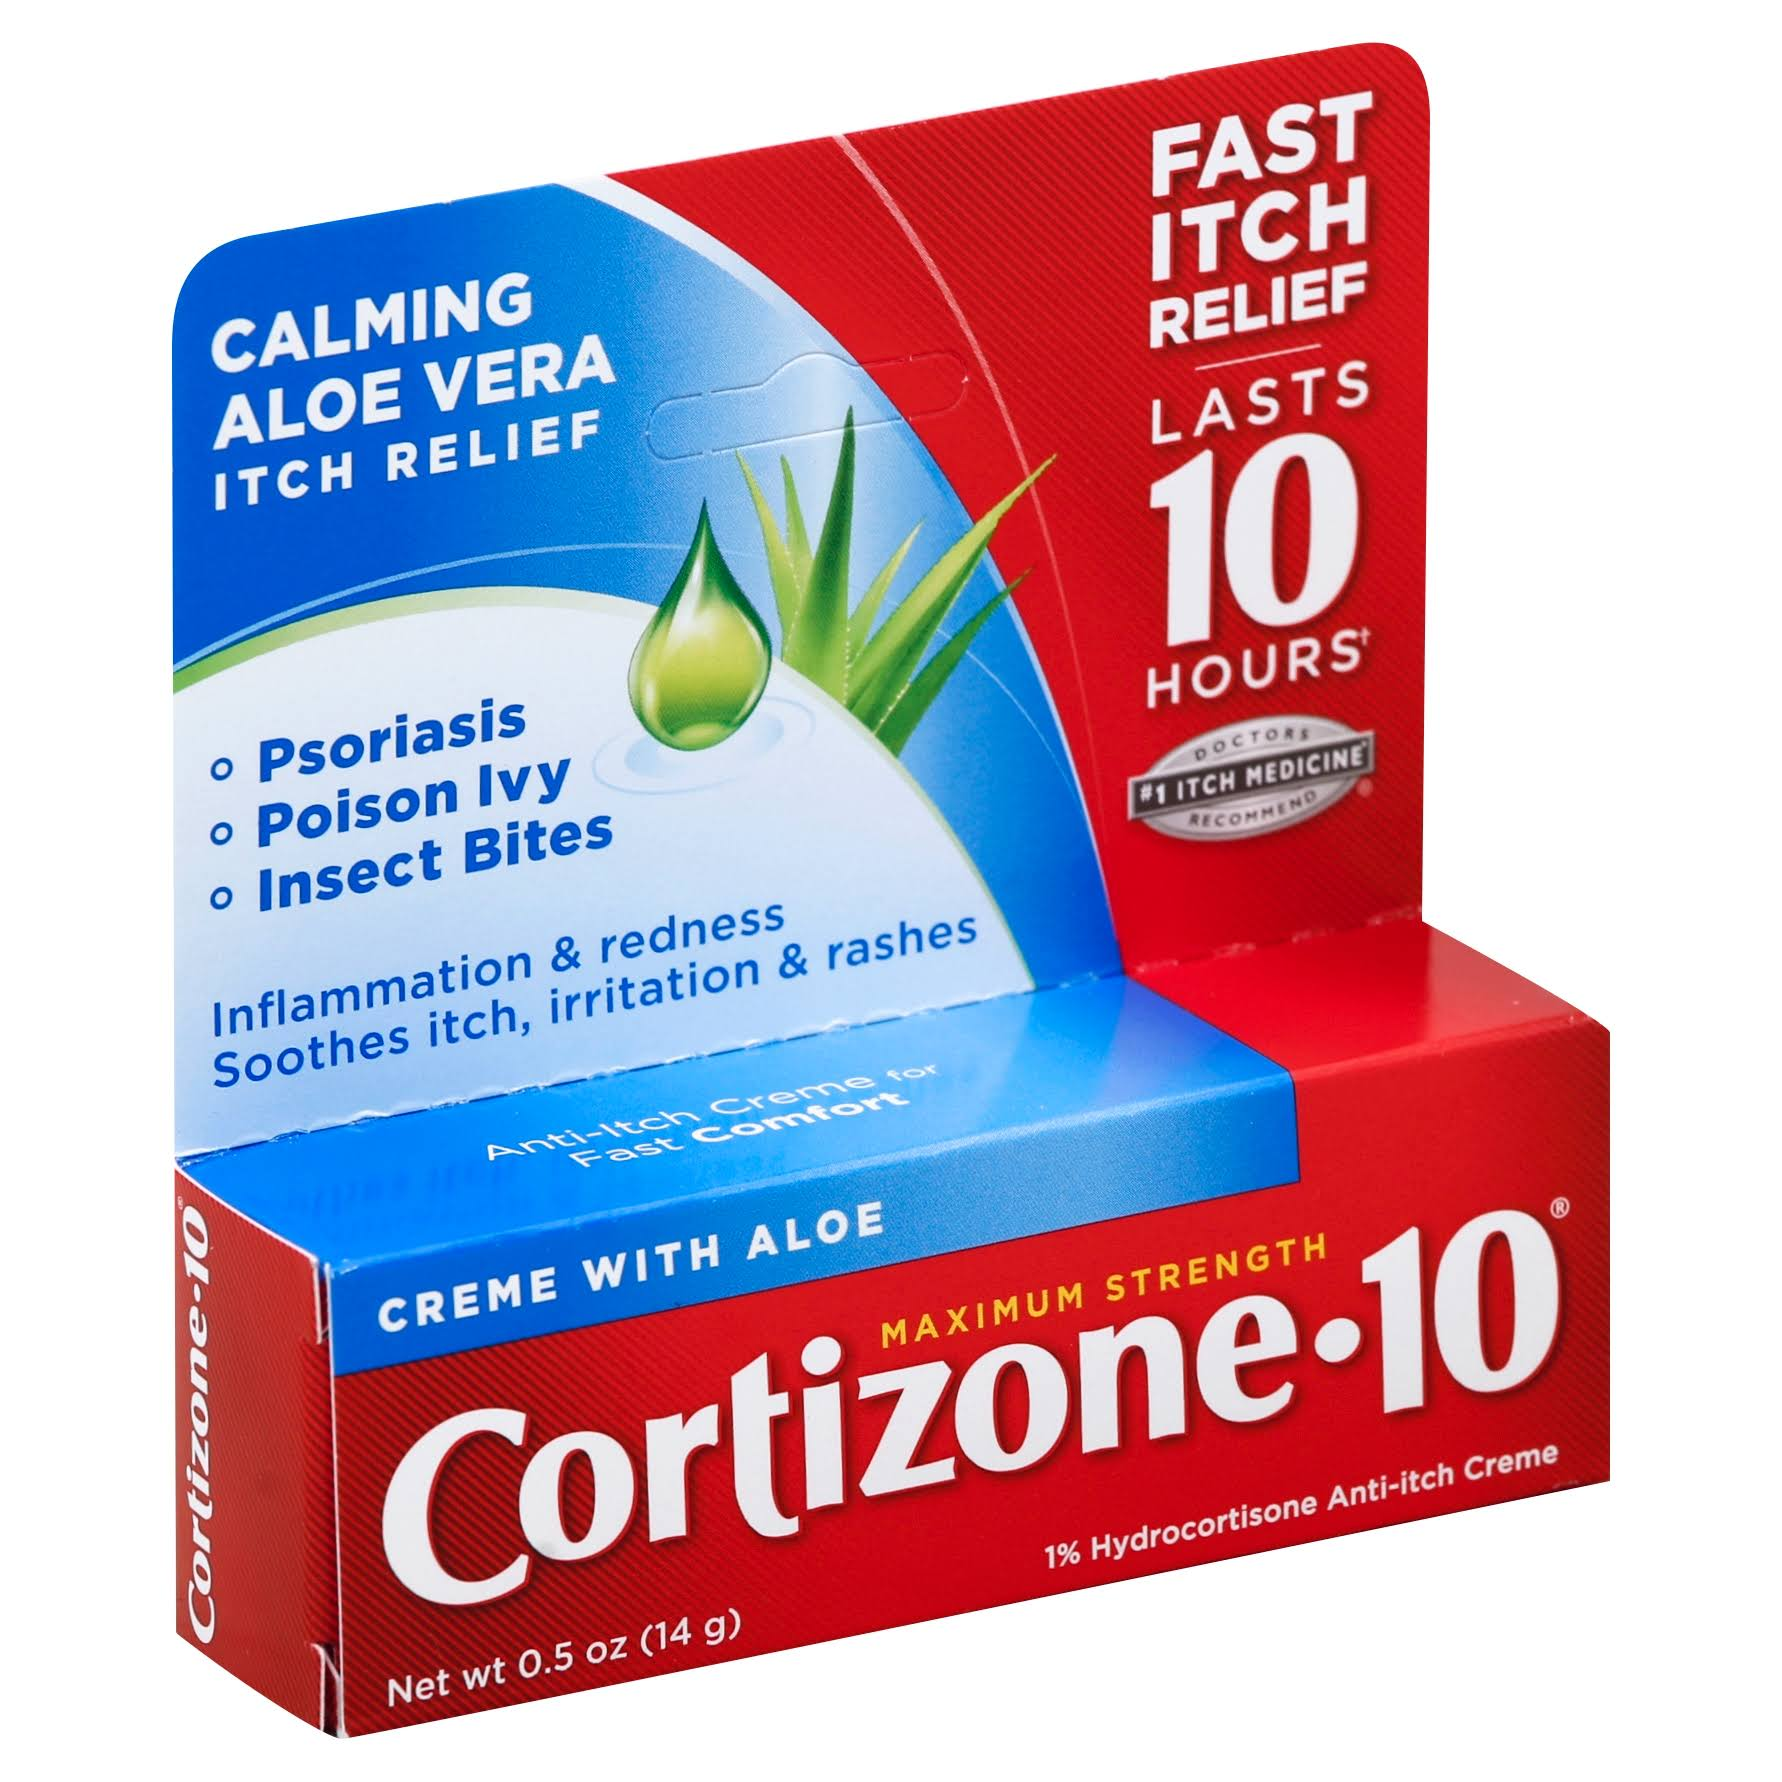 Cortizone 10 Max Strength 1 Hydrocortisone Anti itch Creme - 0.5oz